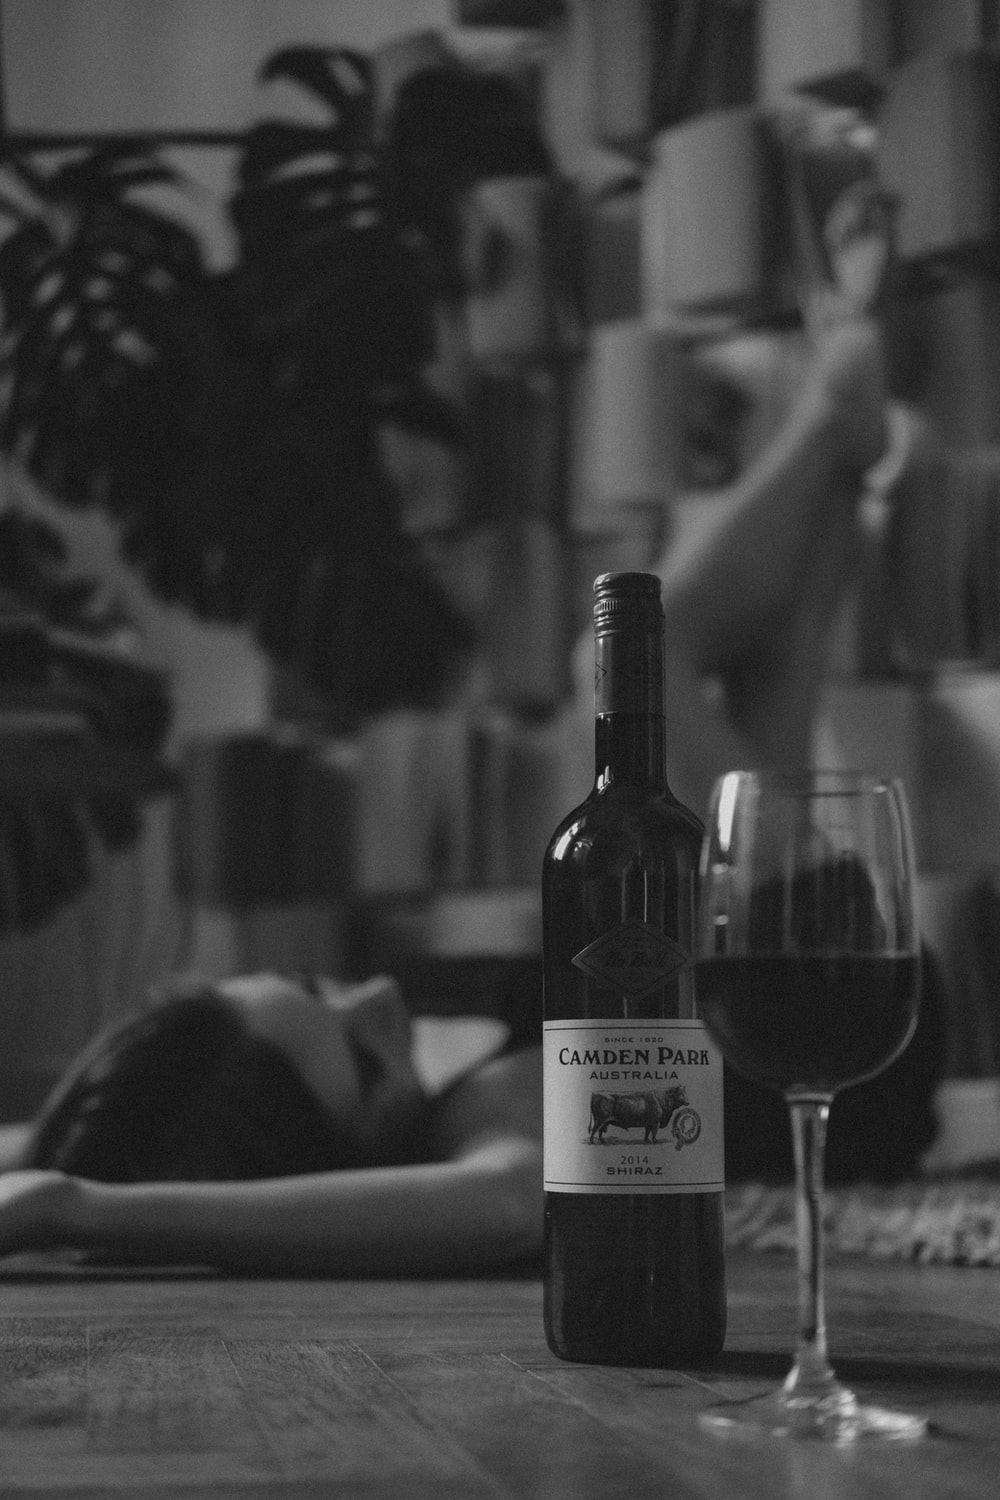 grayscale photo of wine bottle and wine glass